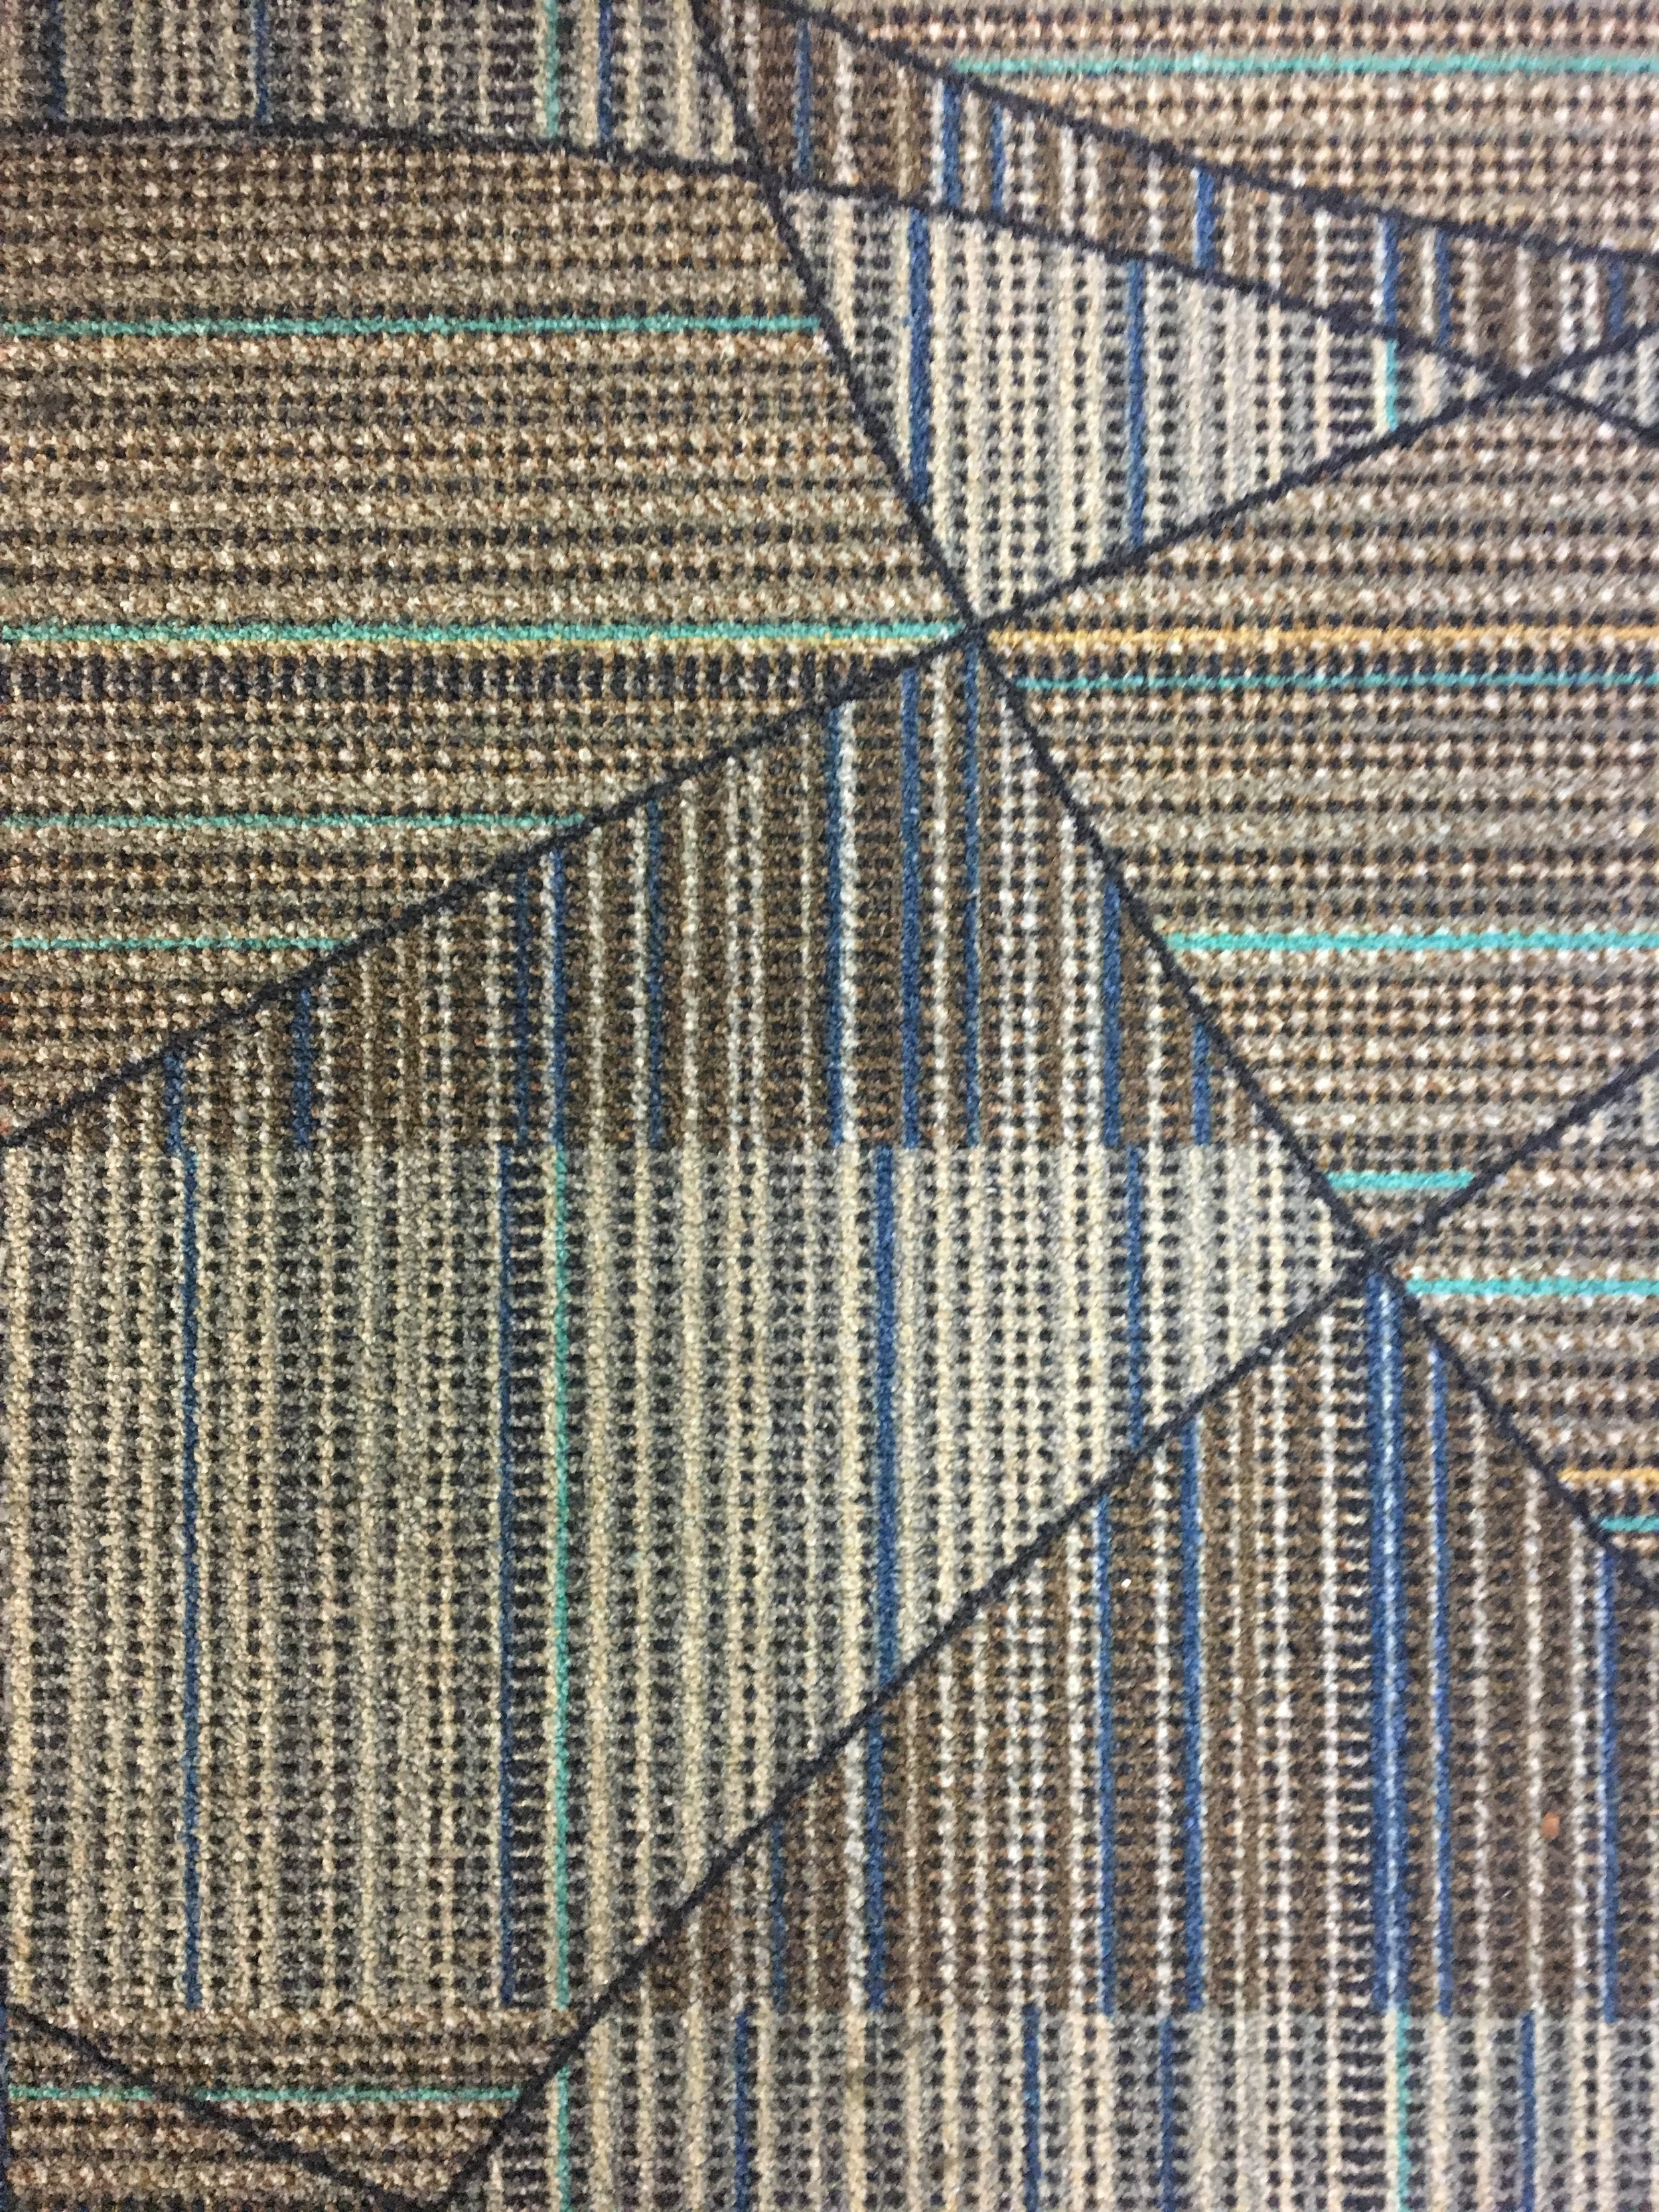 ALONE // Airport Carpet Zine: Photograph of geometric carpet pattern at FLL (Ft Lauderdale, FL)